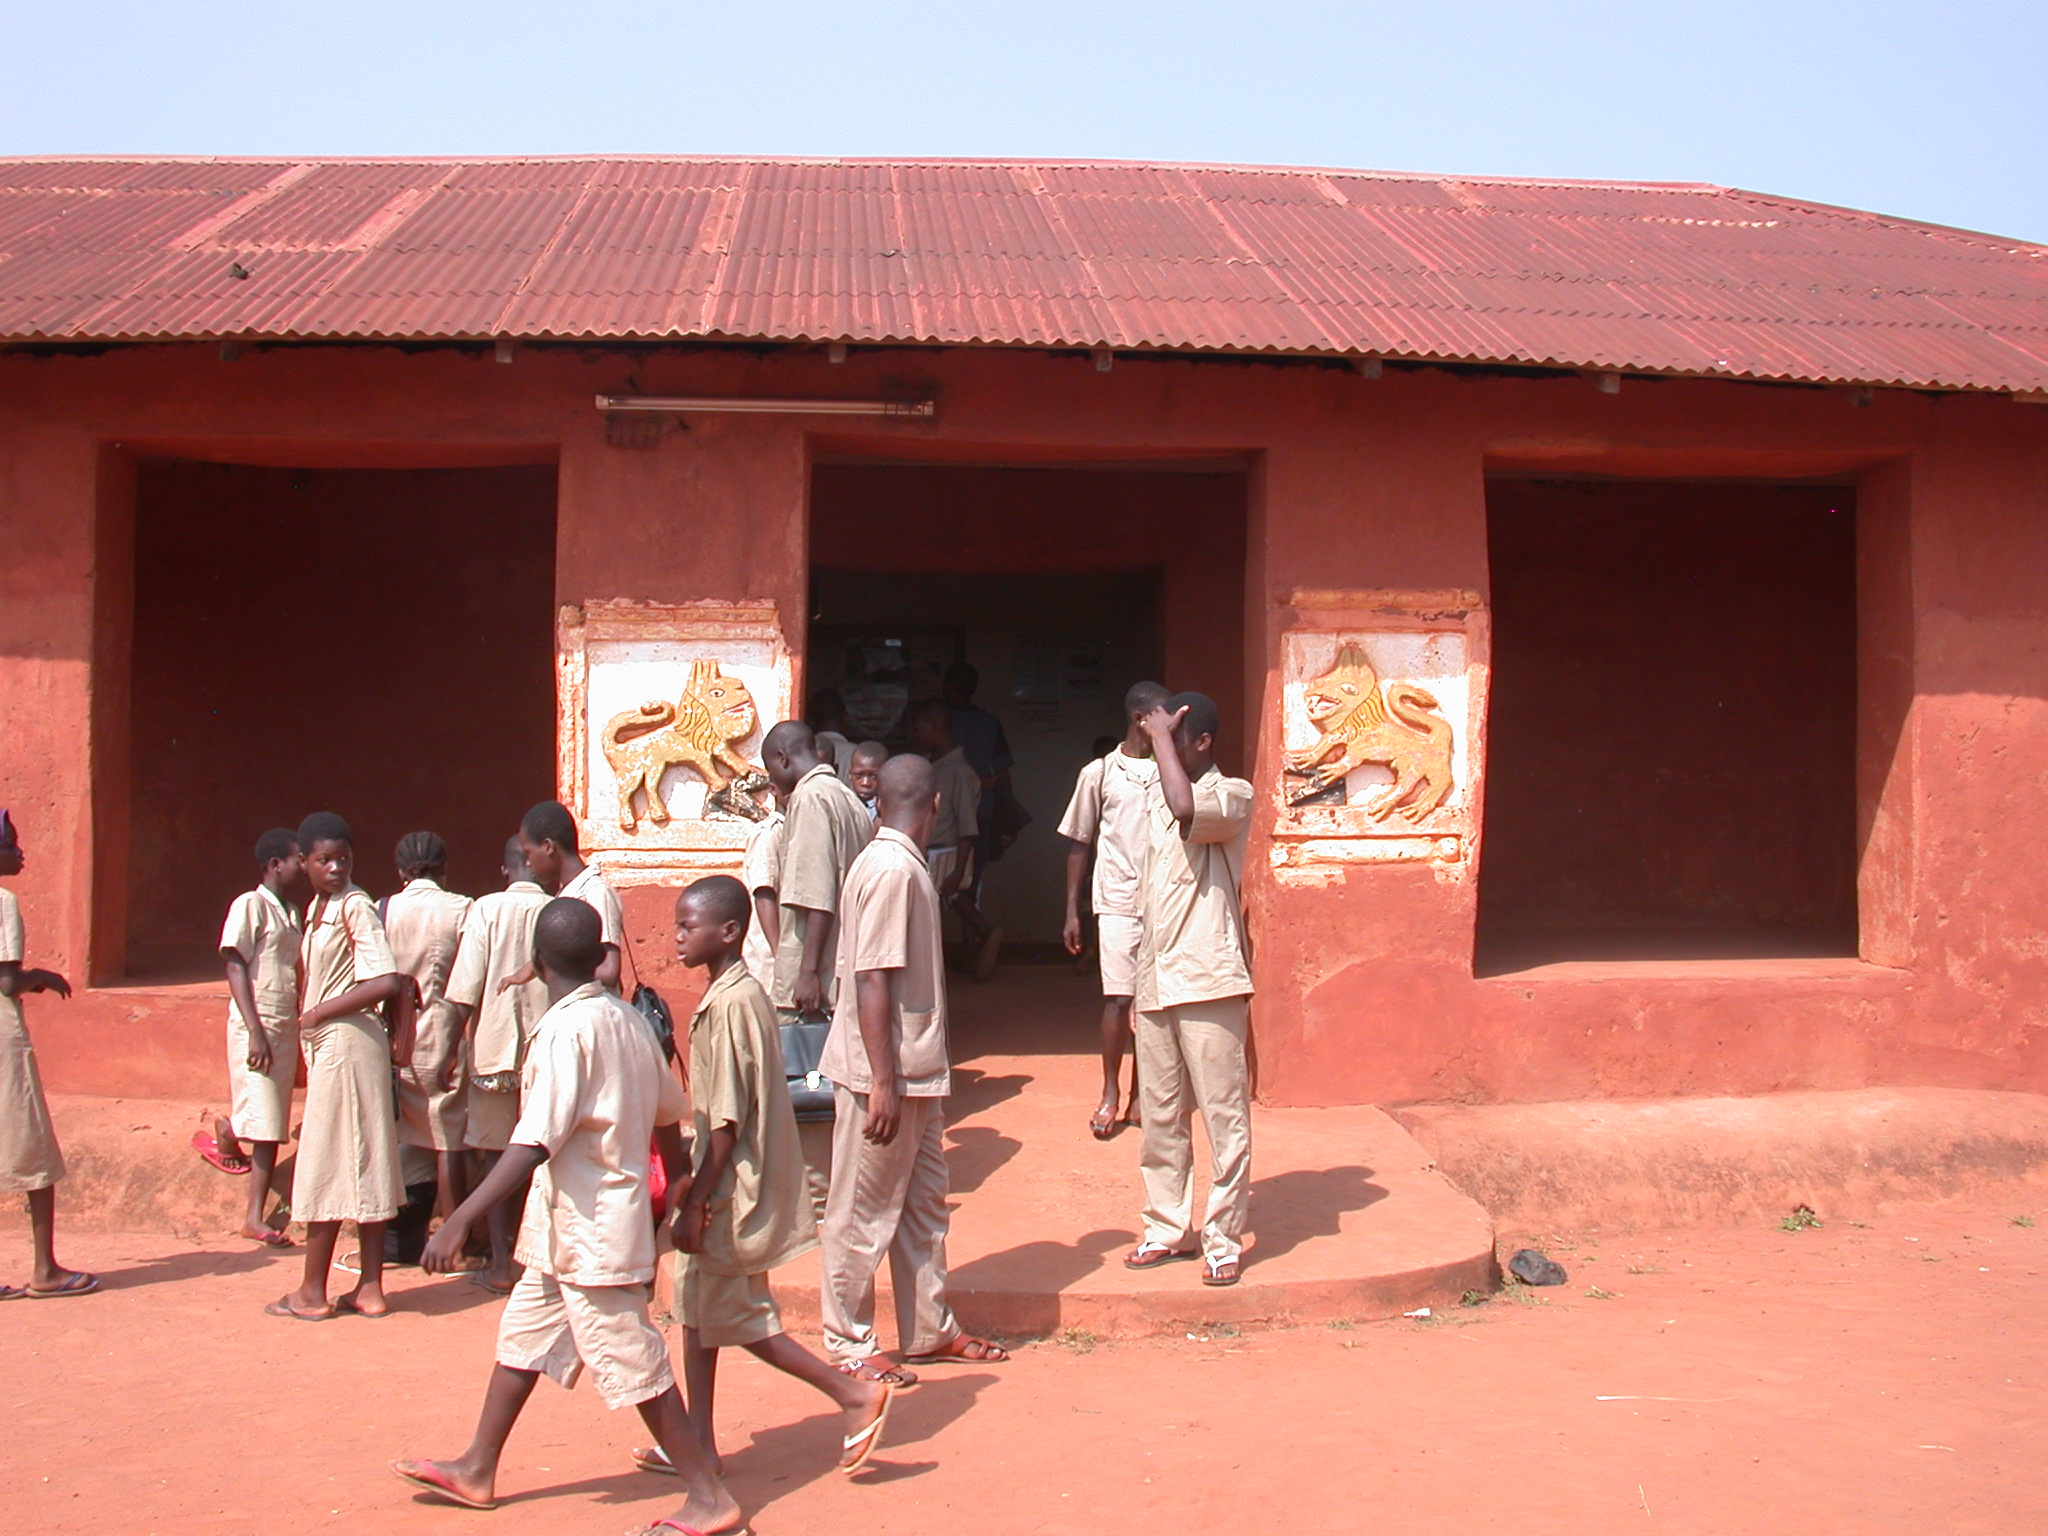 Entrance to Museum Complex, Abomey History Museum, Abomey, Benin